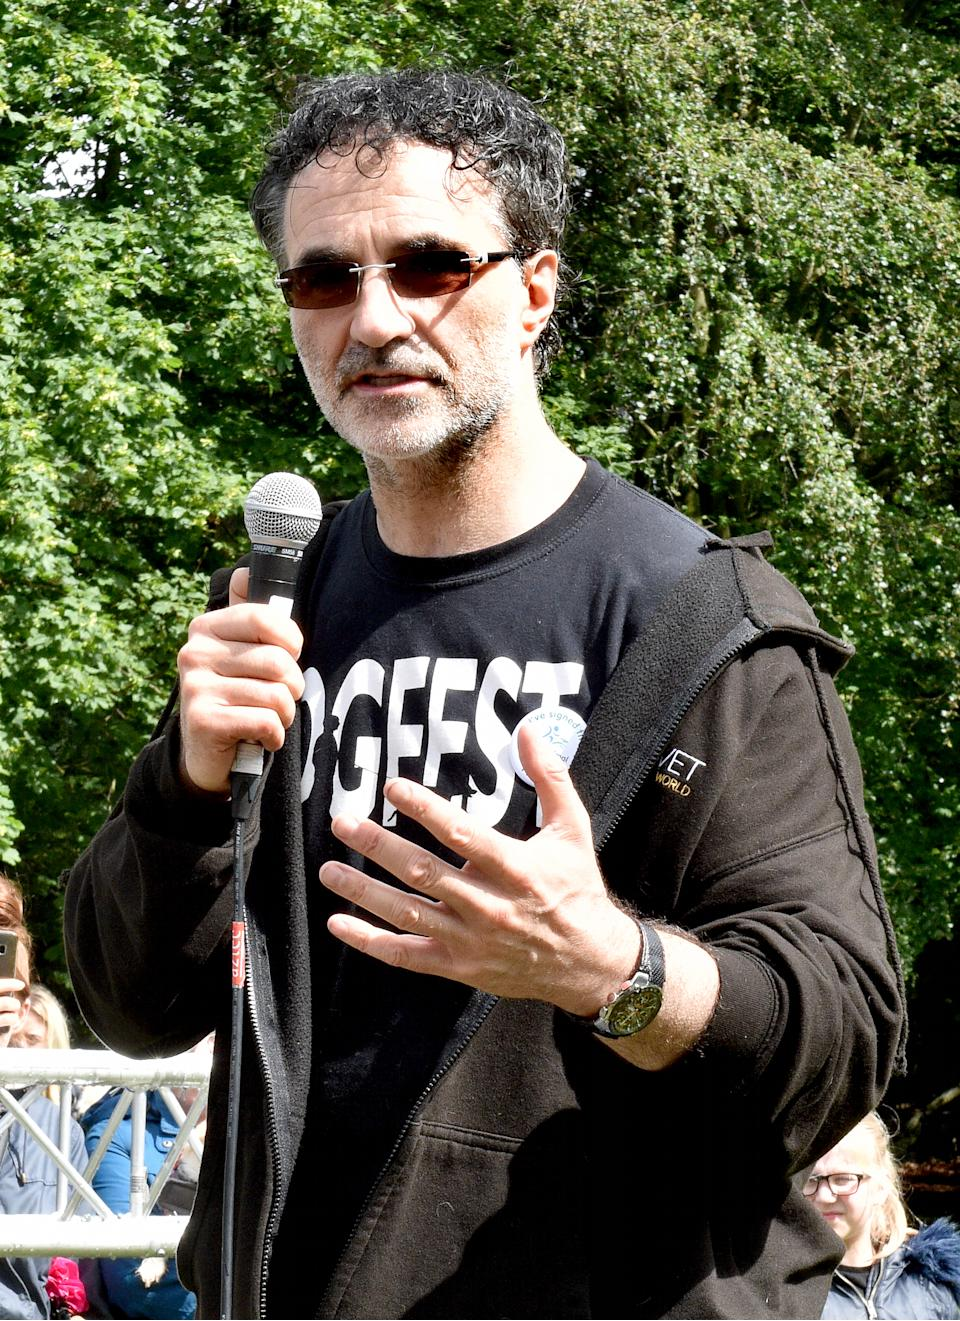 Noel Fitzpatrick had fitted the tortoise with bionic limbs. (Photo by Shirlaine Forrest/Getty Images)